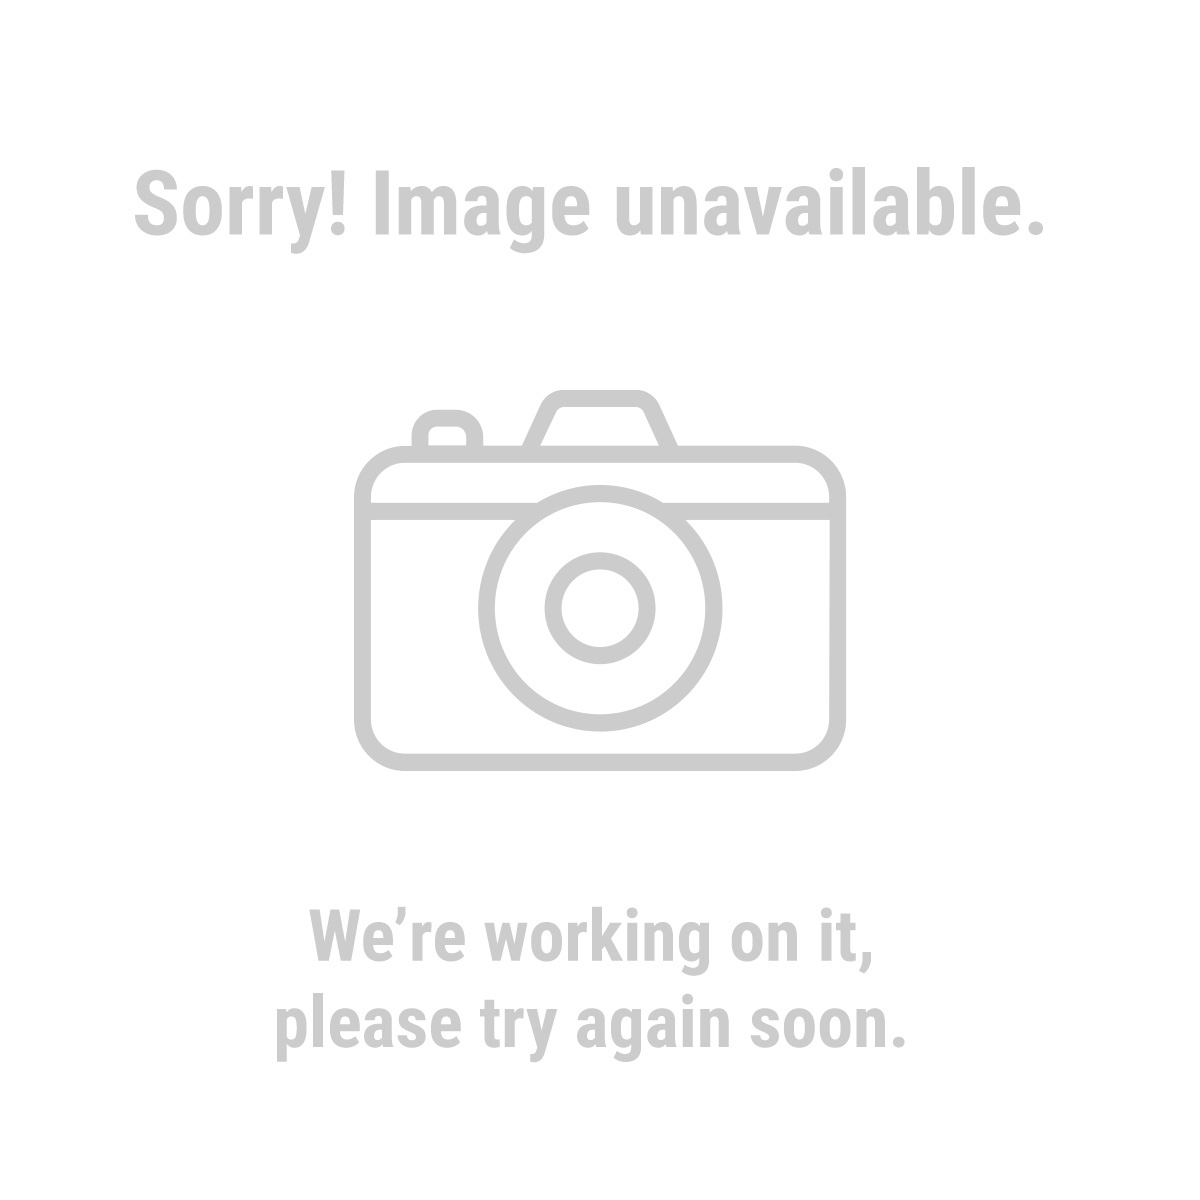 GERSON 66554 P95 Maintenance-Free Dual Cartridge Respirator - Medium